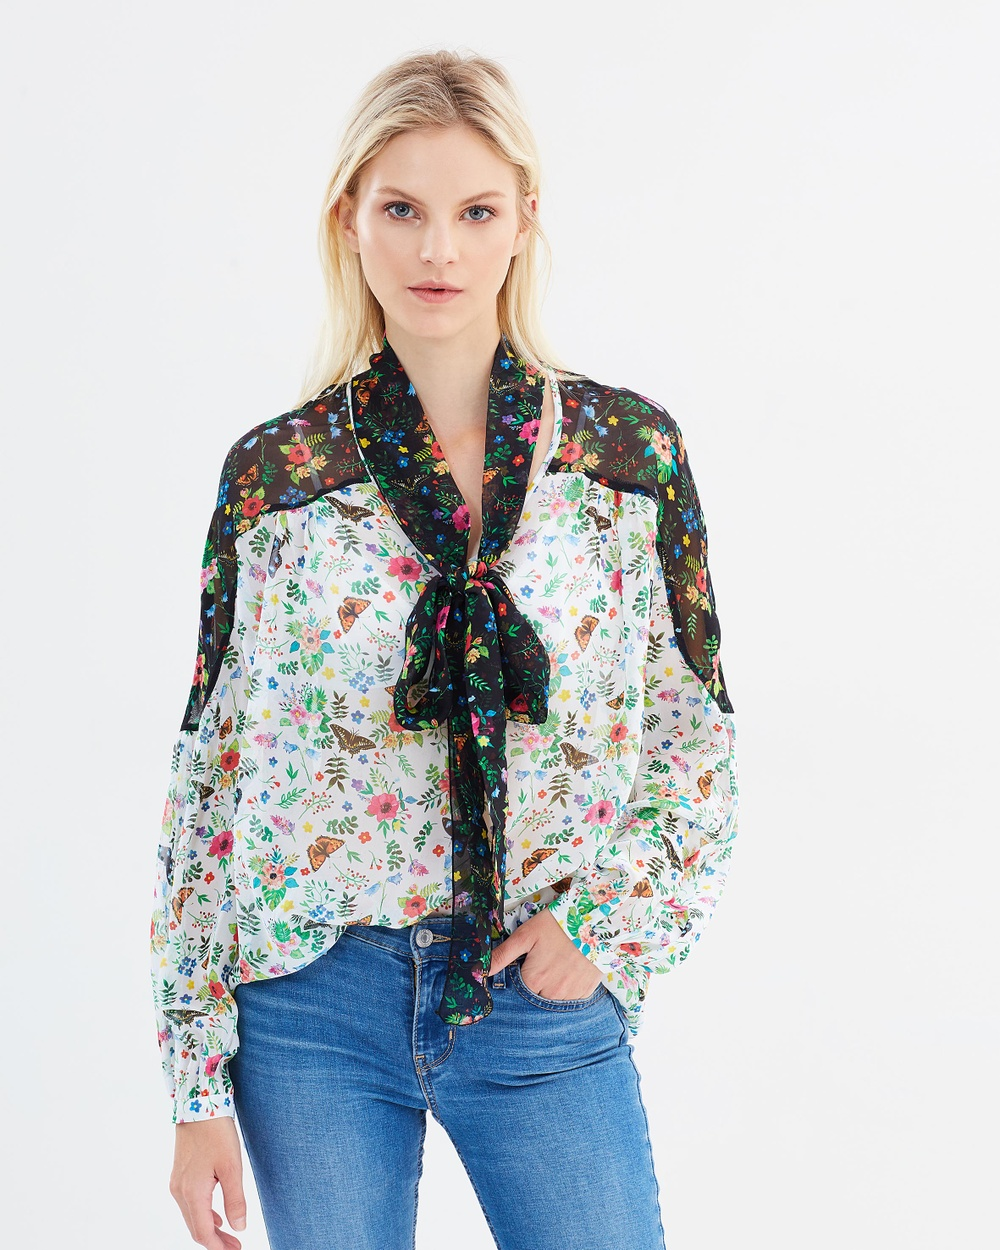 Donna Ida Maggie In Love Top Tops Enchanted Meadow Maggie In Love Top